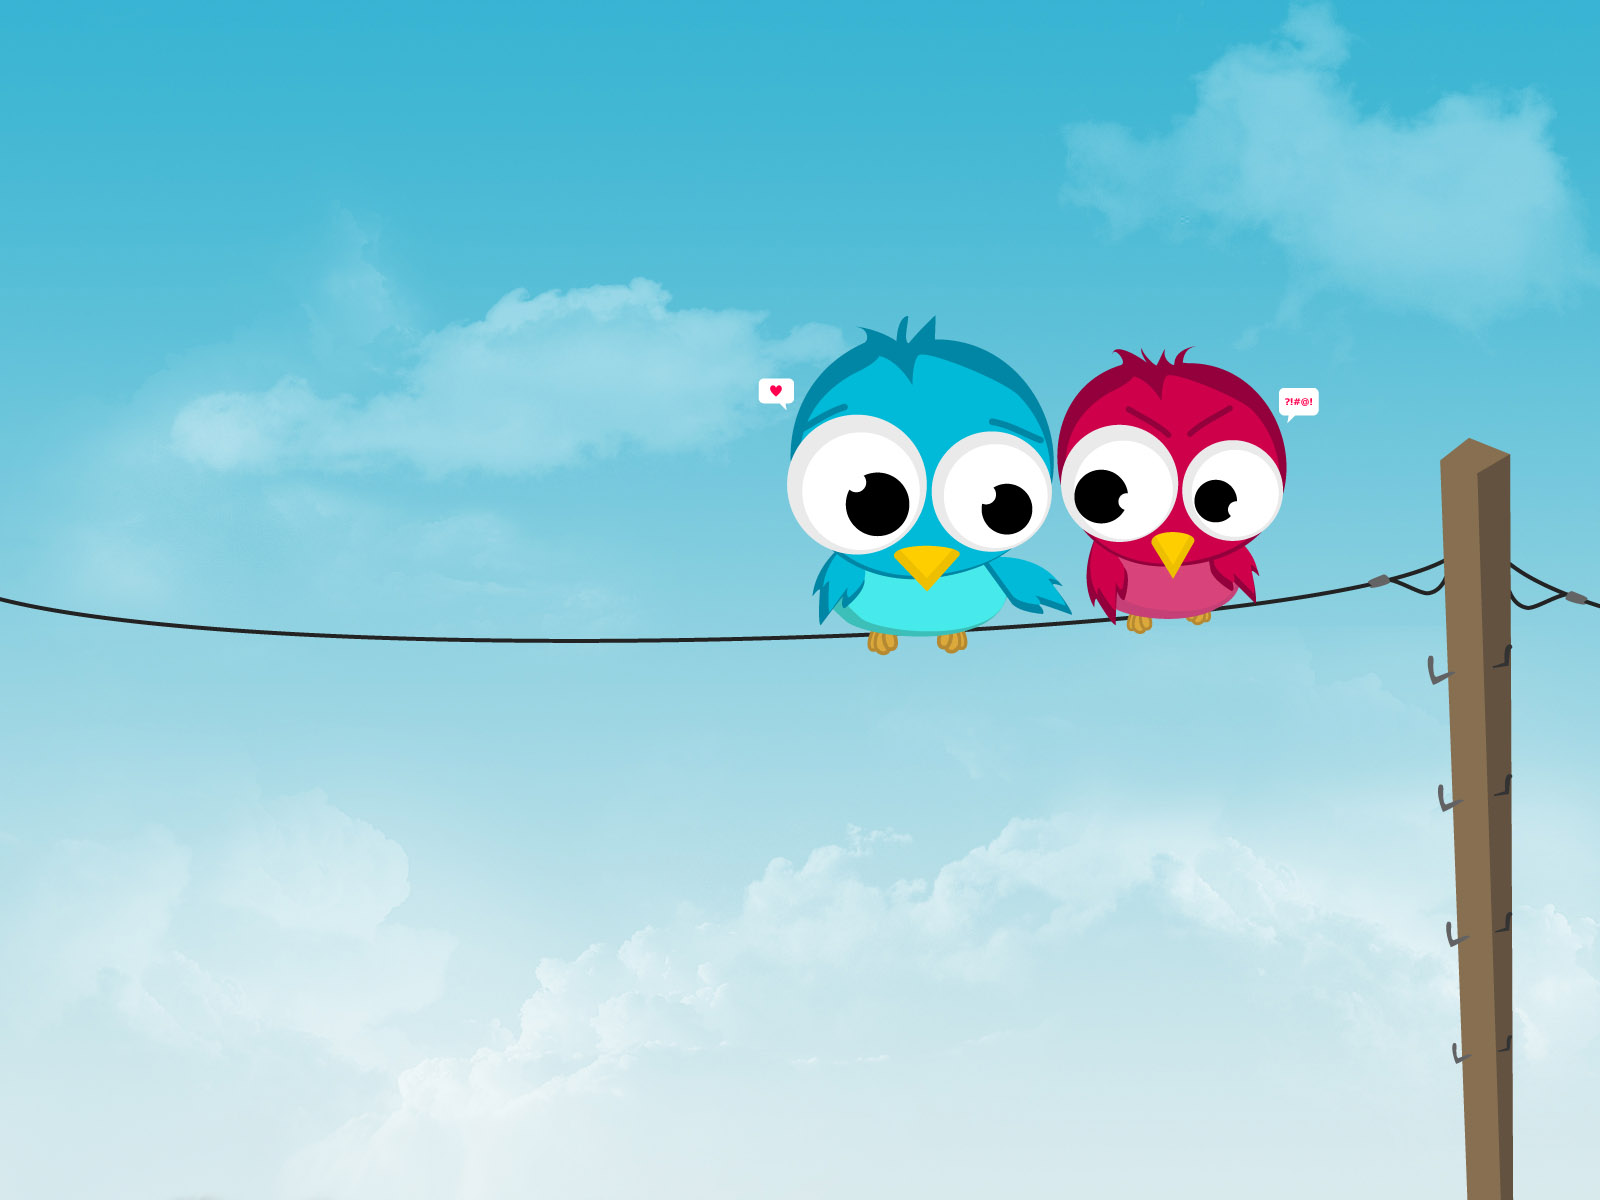 Download Cute Love Wallpapers pictures in high definition or 1600x1200